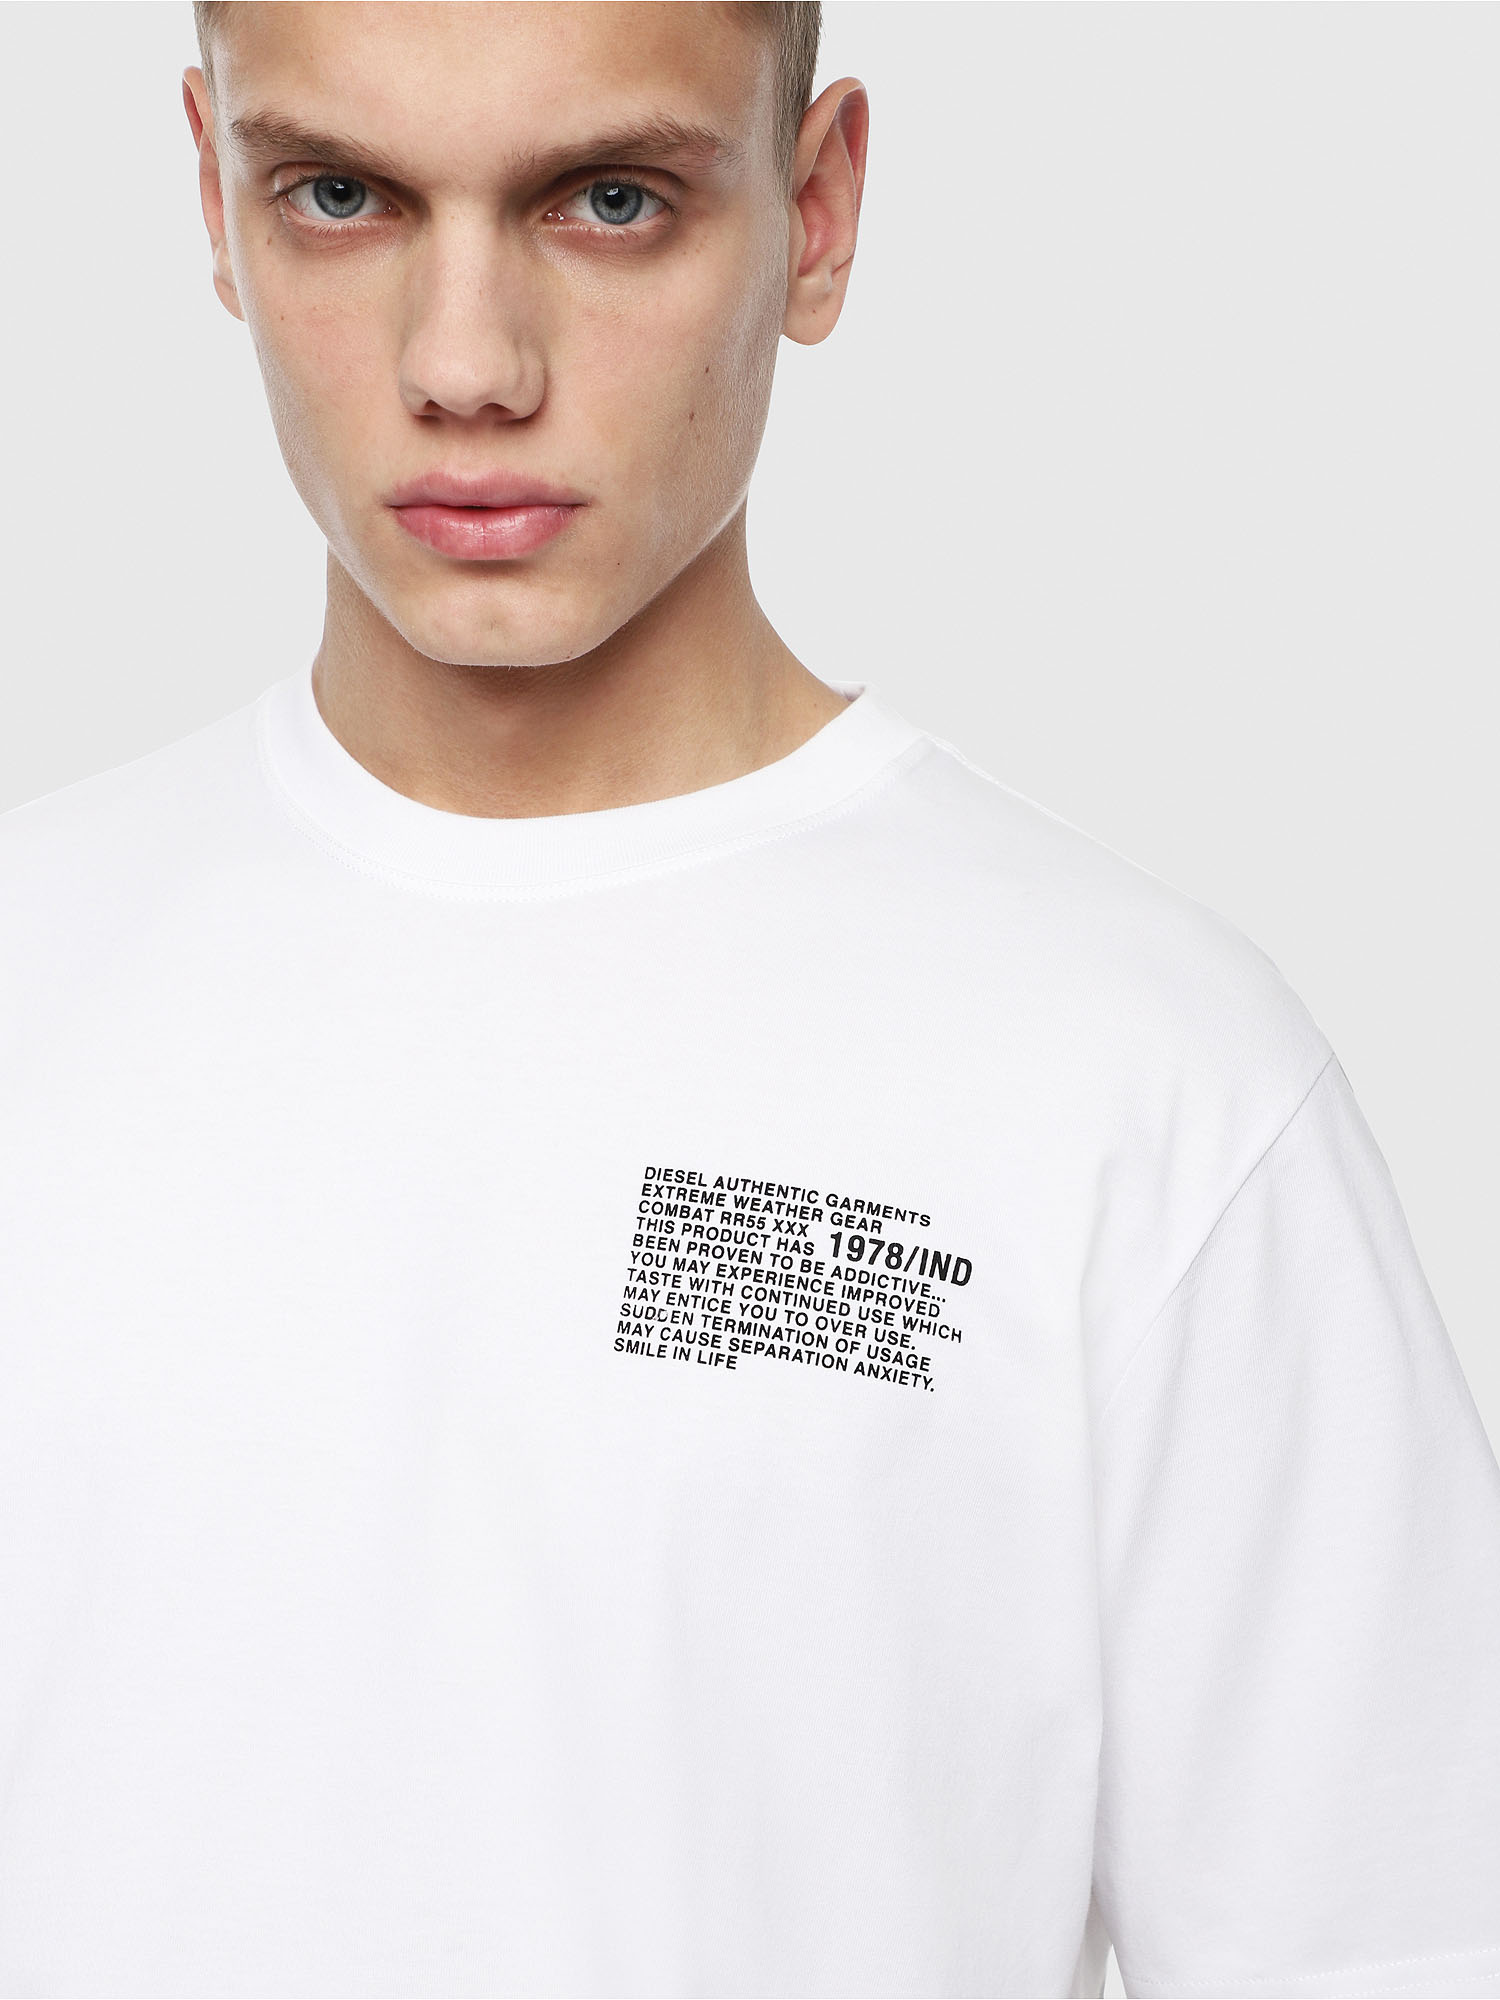 Diesel - T-JUST-Y1,  - T-Shirts - Image 3